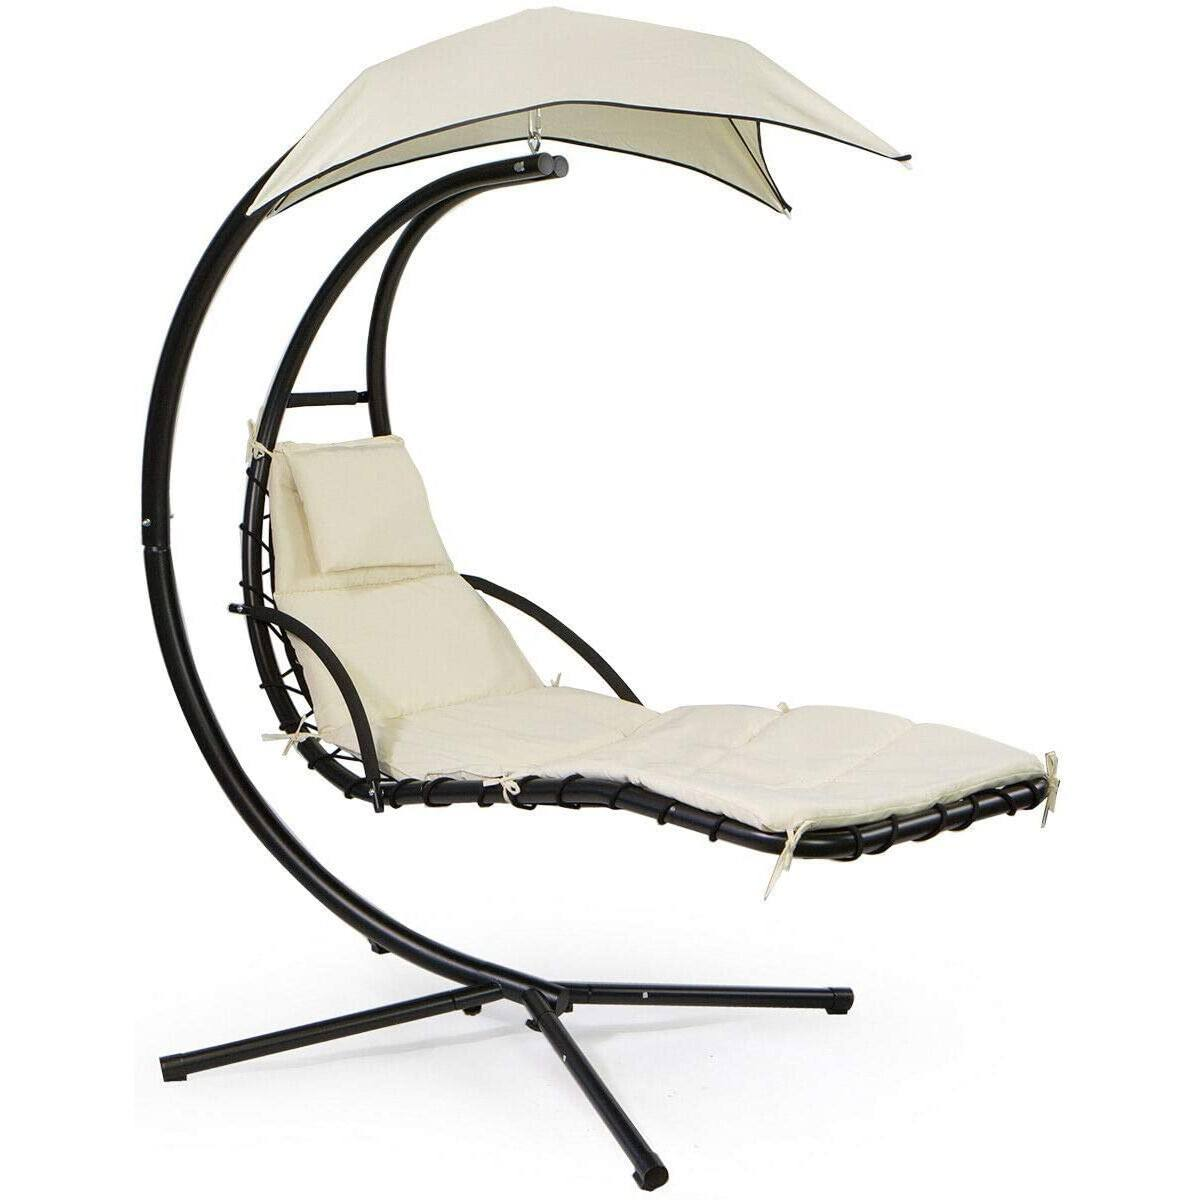 Outdoor Hanging Helicopter Dream Lounger Chair Patio Swings Hammock Chair Canopy Umbrella Sun Lounger